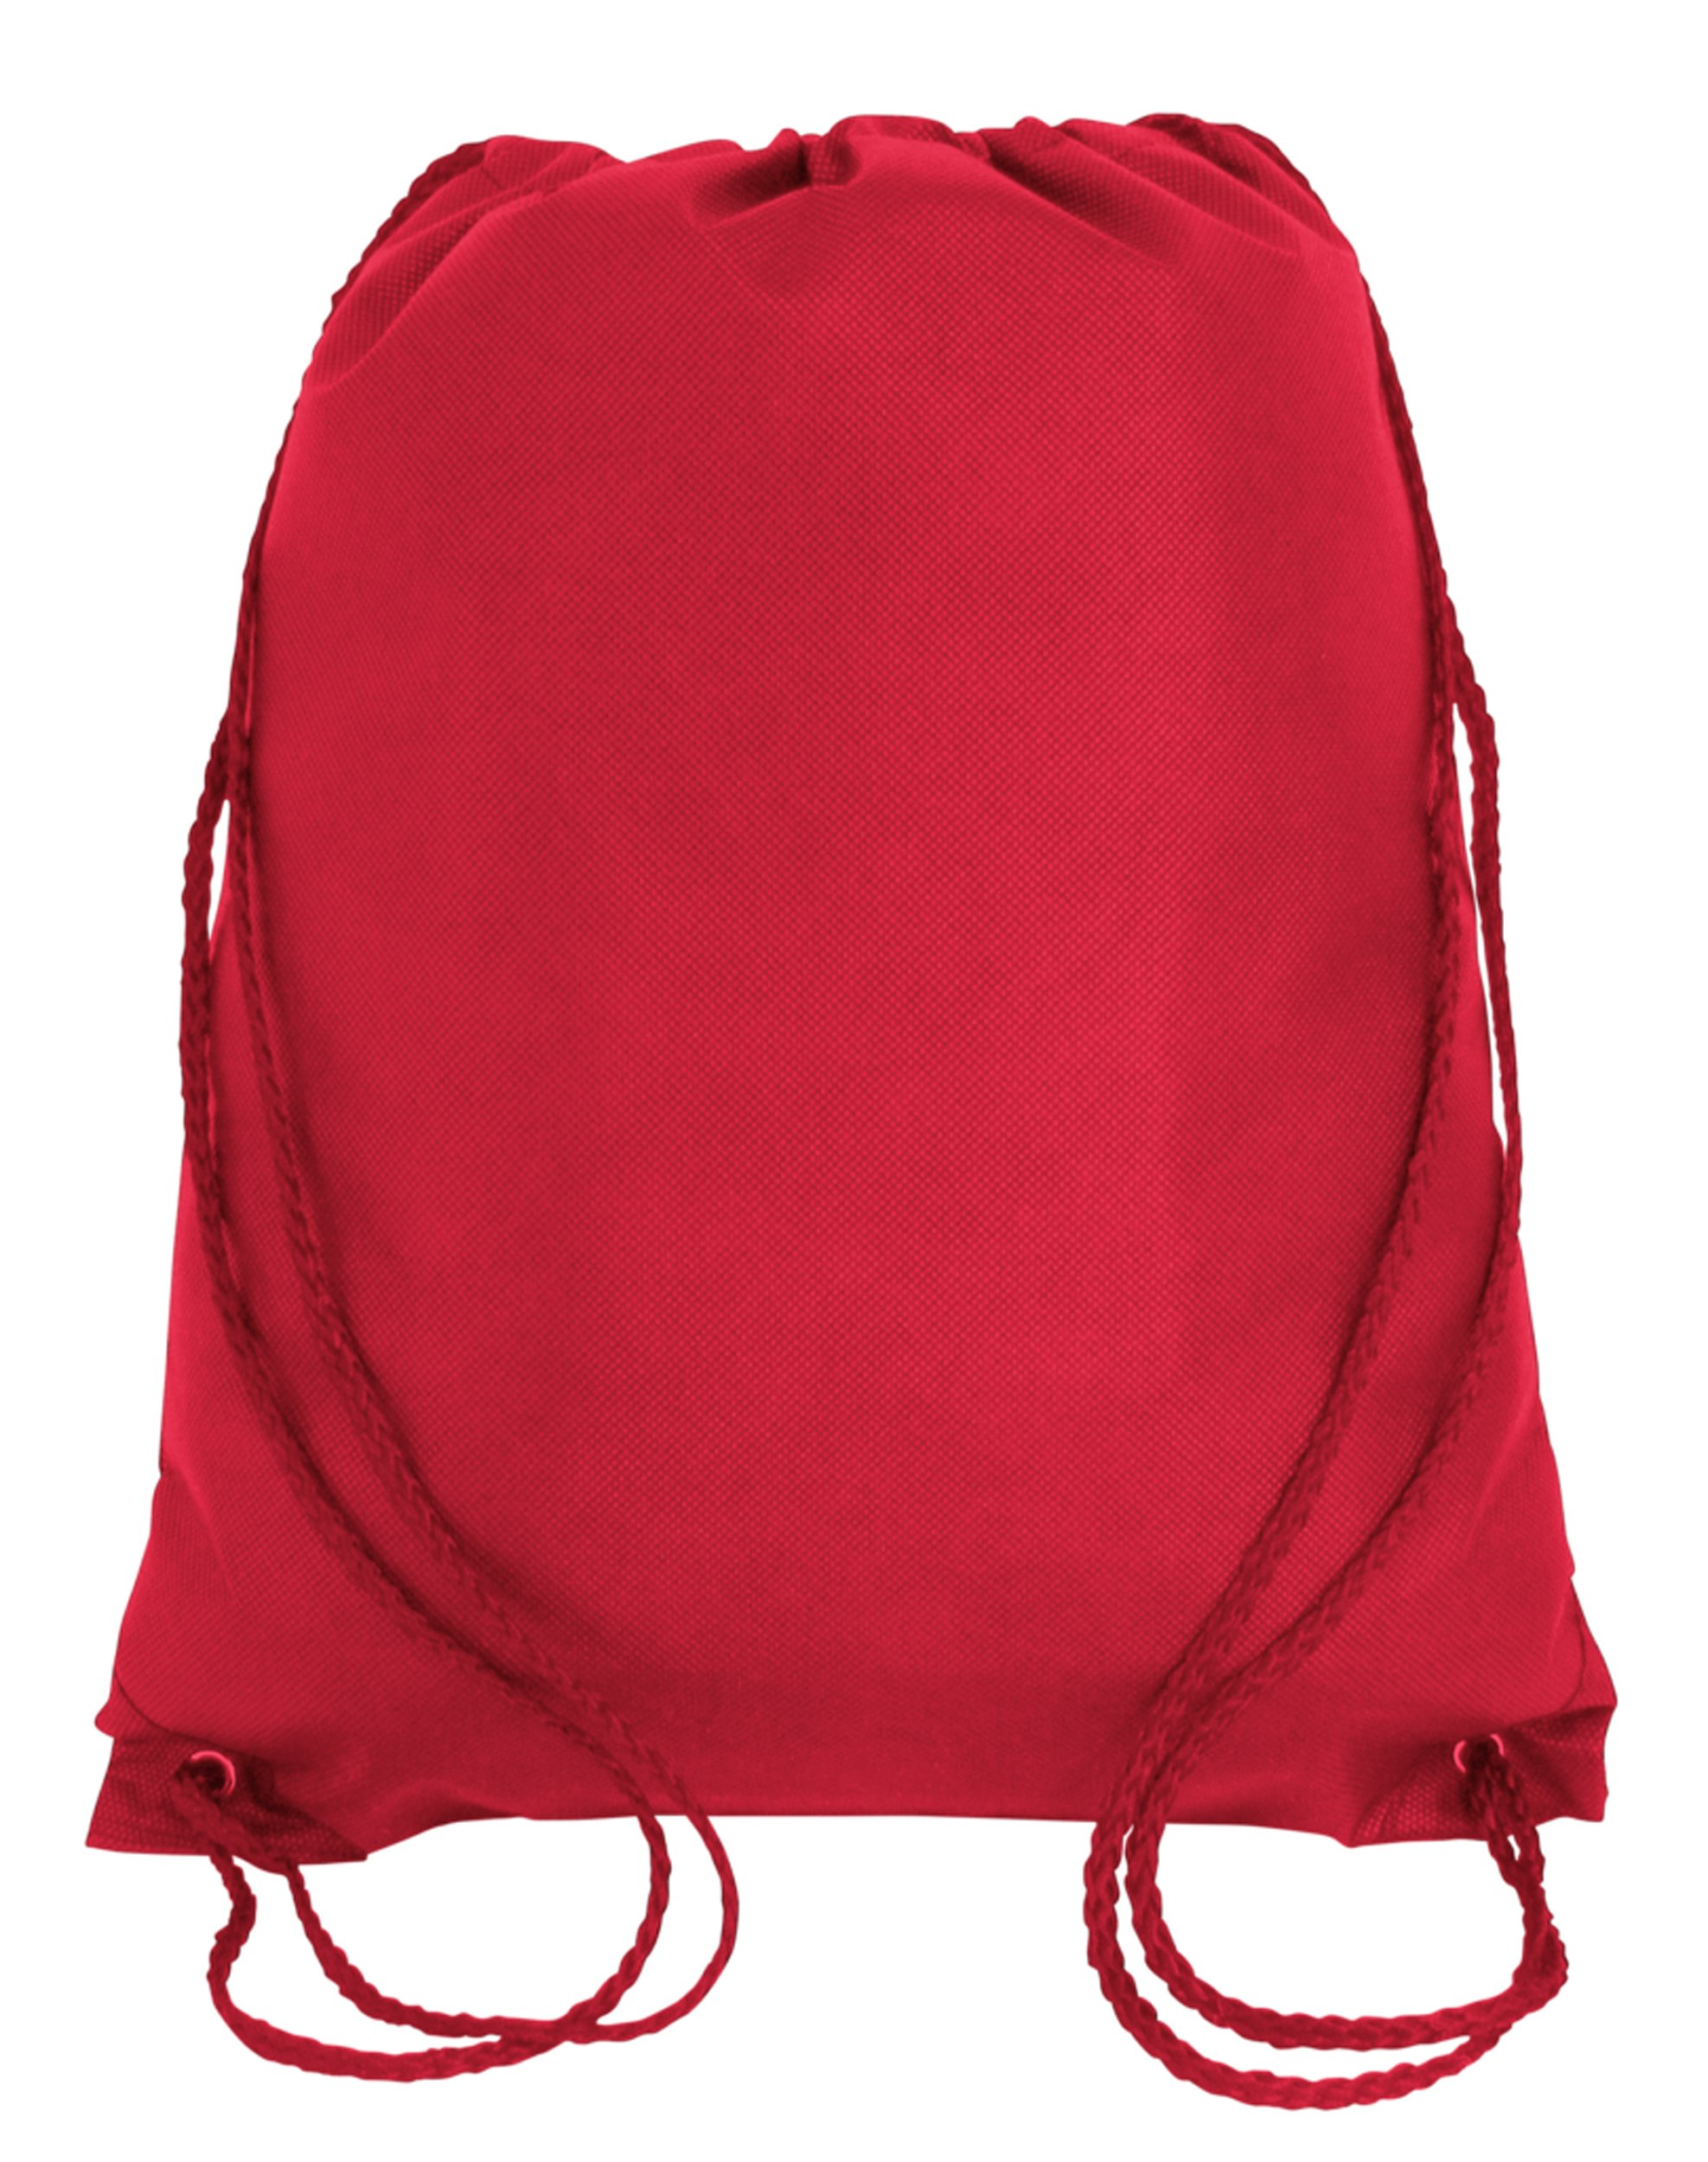 50 PACK - Economical Non Woven Well Made Drawstring Backpack Bags Bulk - Giveaway Church, School, Event, Trade show bags Charity Cheap Donation Wholesale Drawstring Backpacks Sack Packs (Red)